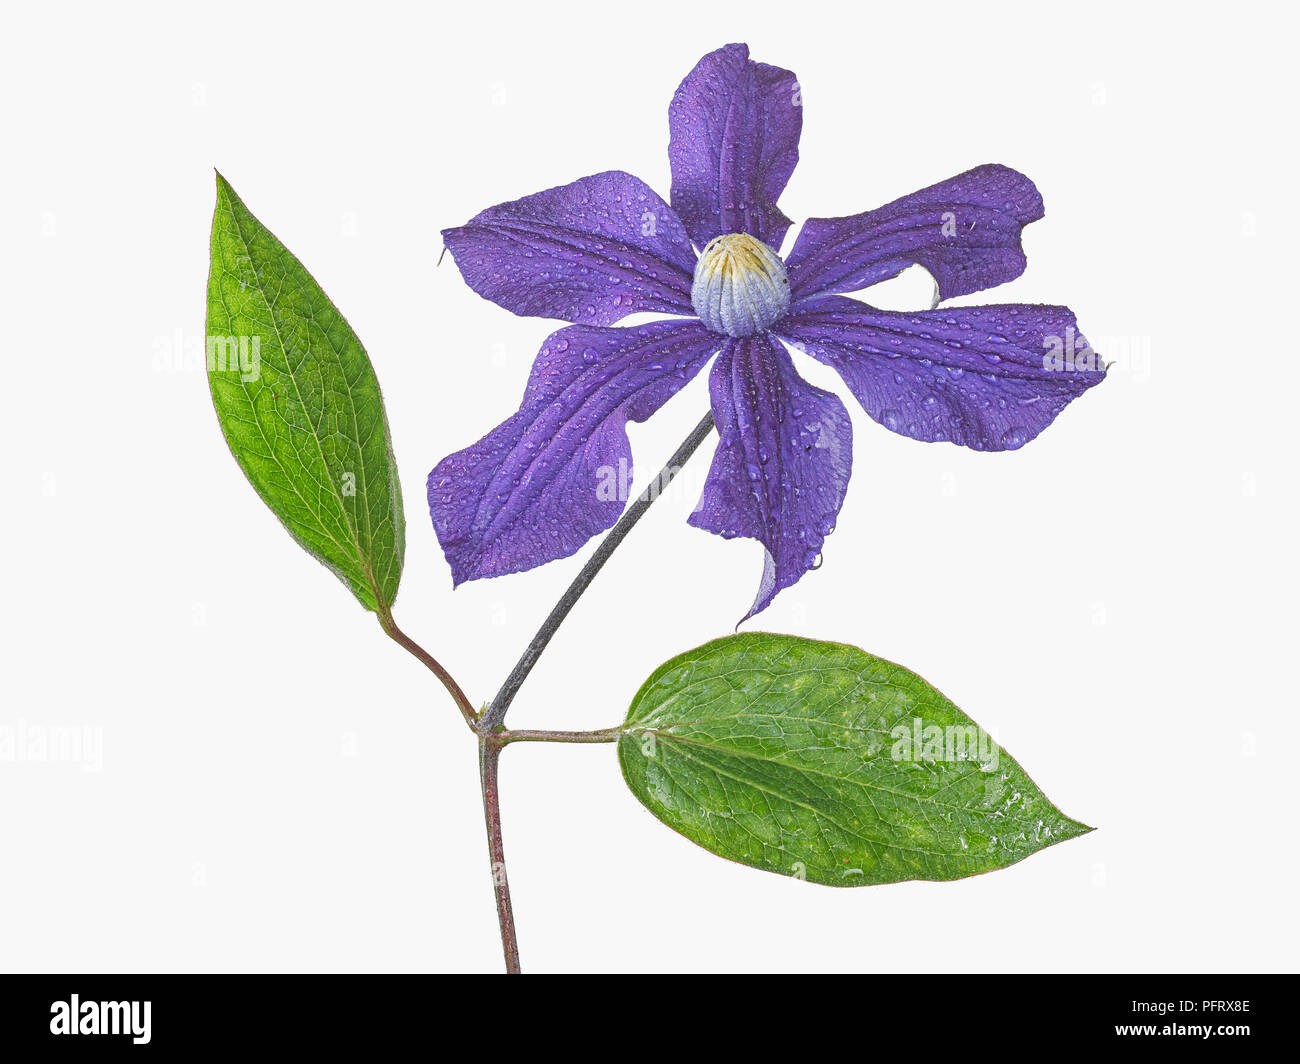 Clematis - Stock Image